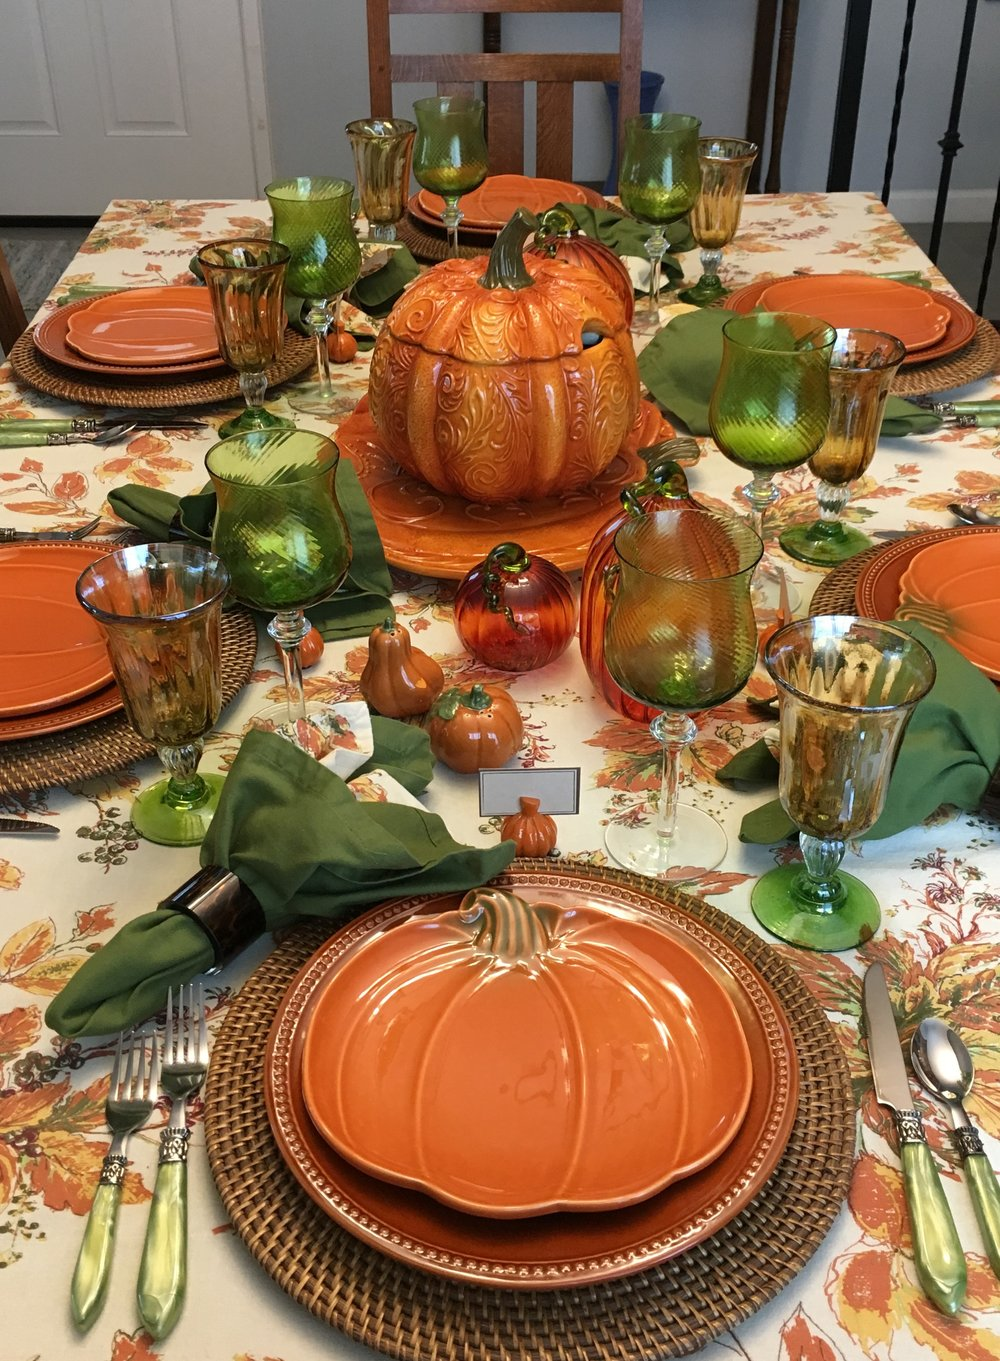 So it's time for a fall table setting. I have been pondering this one for a while and finally pulled it together so we can enjoy it for a bit before the Halloween one. The tablecloth and print napkins are April Cornell from HomeGoods. I really love that leaf design. The green napkins are from Pier1 I think. I often buy napkins there on sale.